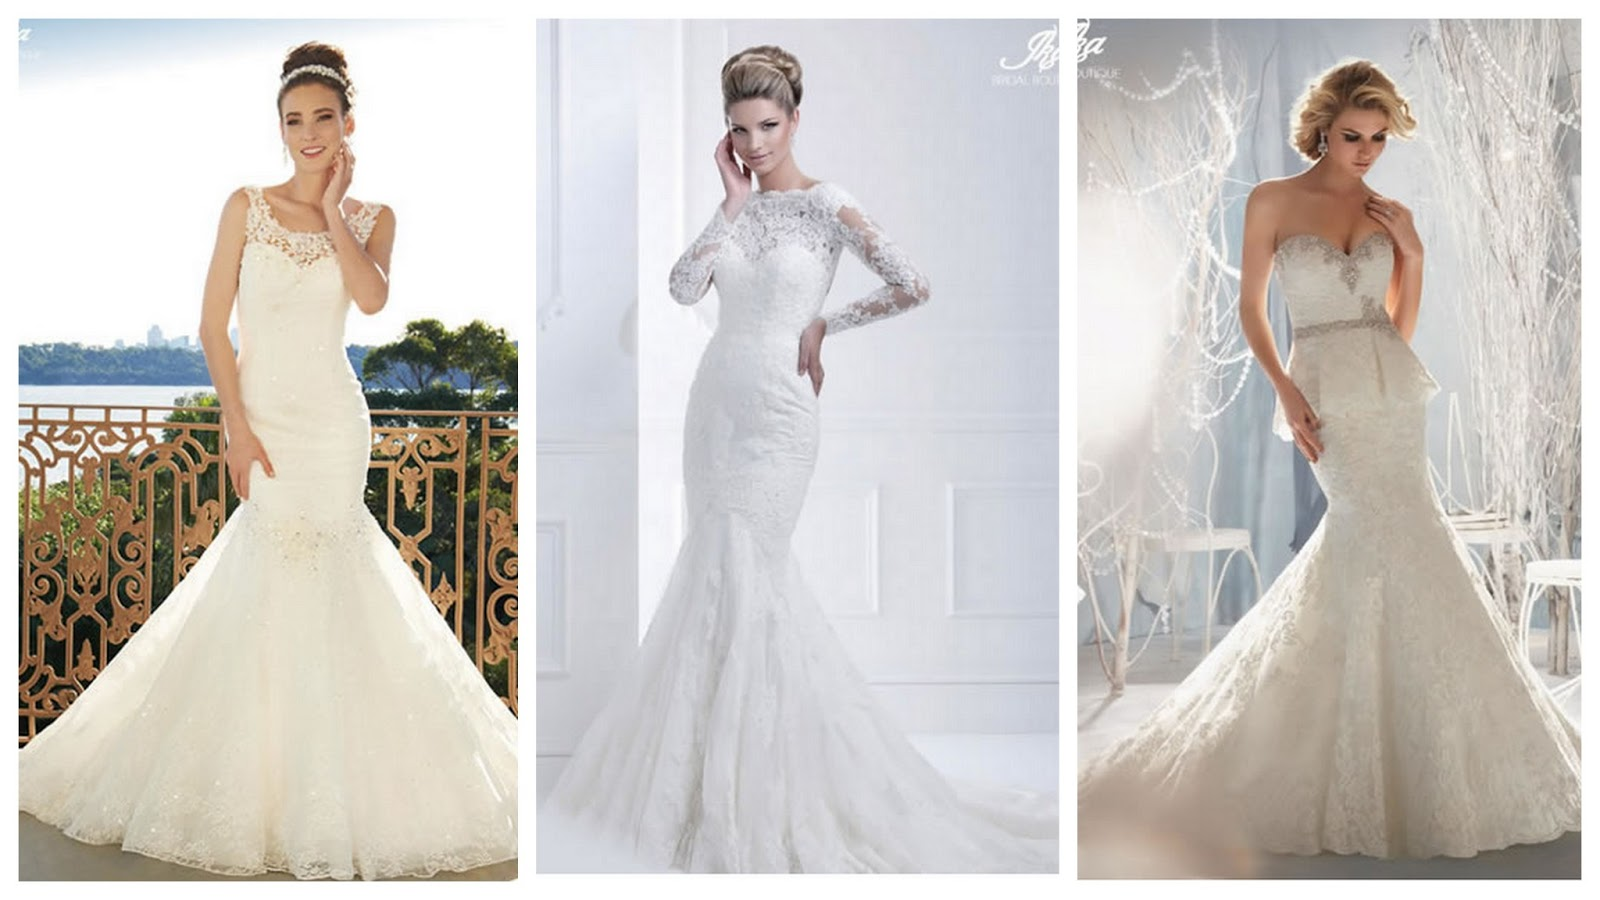 Wedding Dresses Boutique Online - Wedding Dresses In Jax